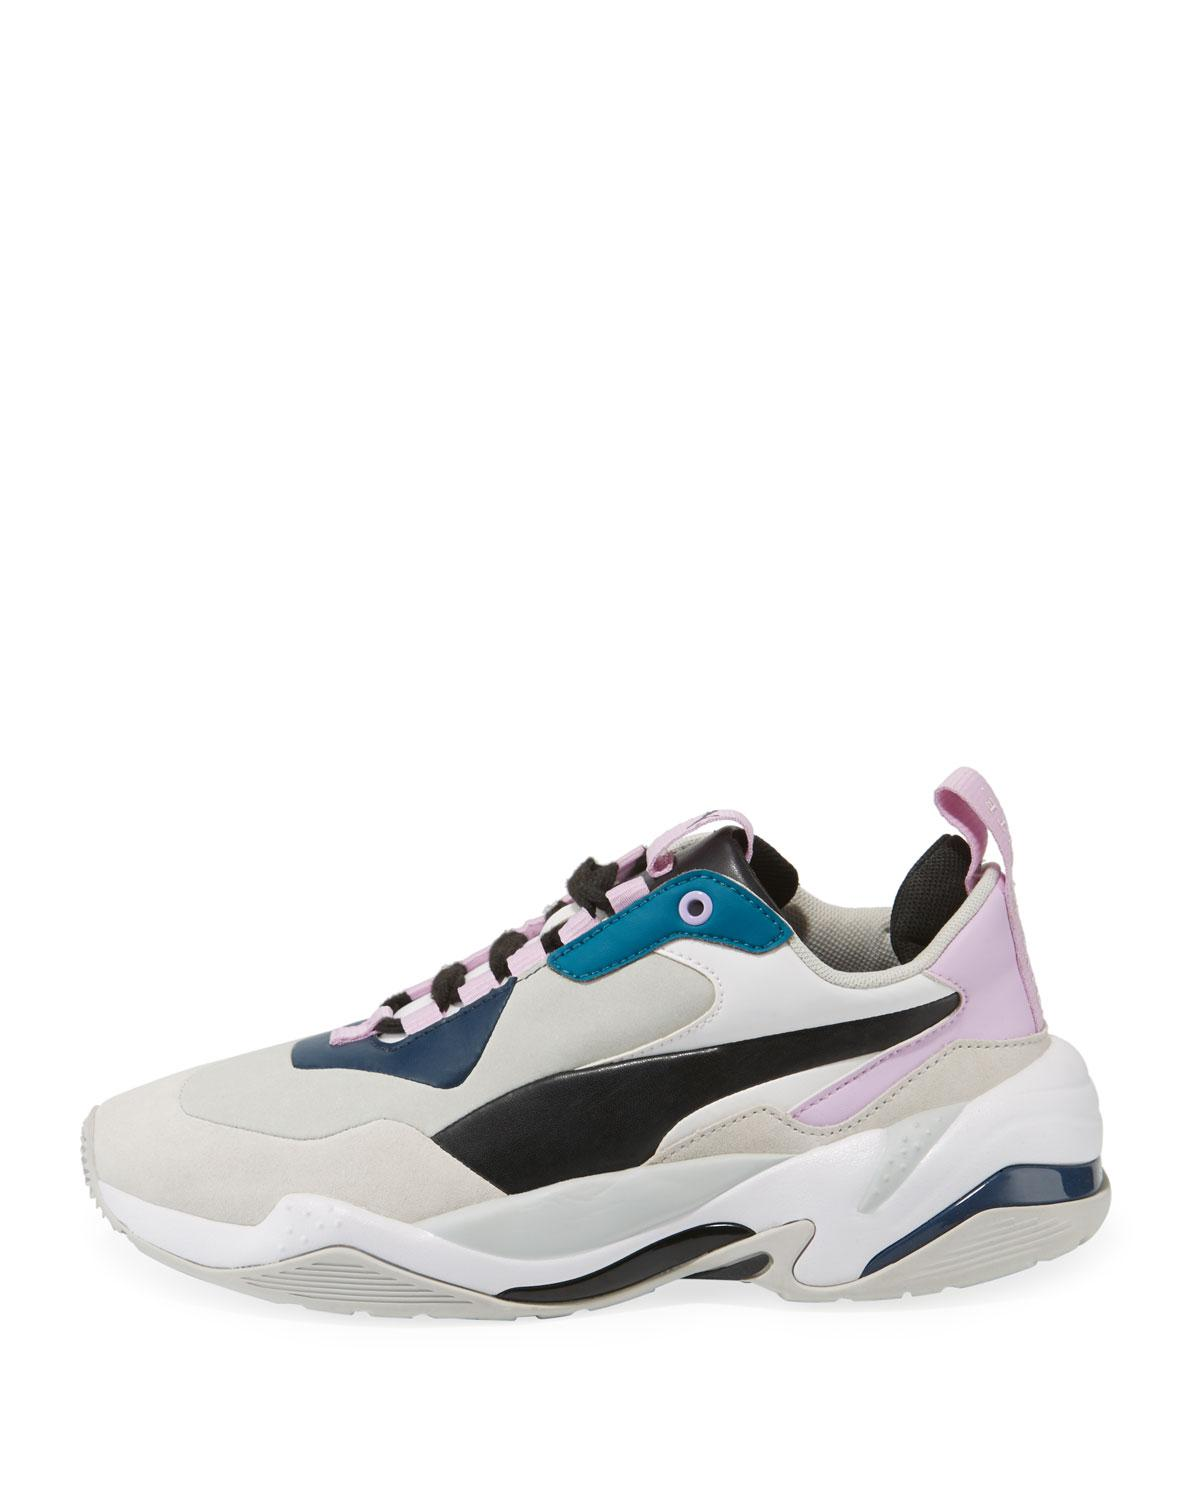 50adffe70a81 PUMA Thunder Rive Colorblock Sneakers - Lyst